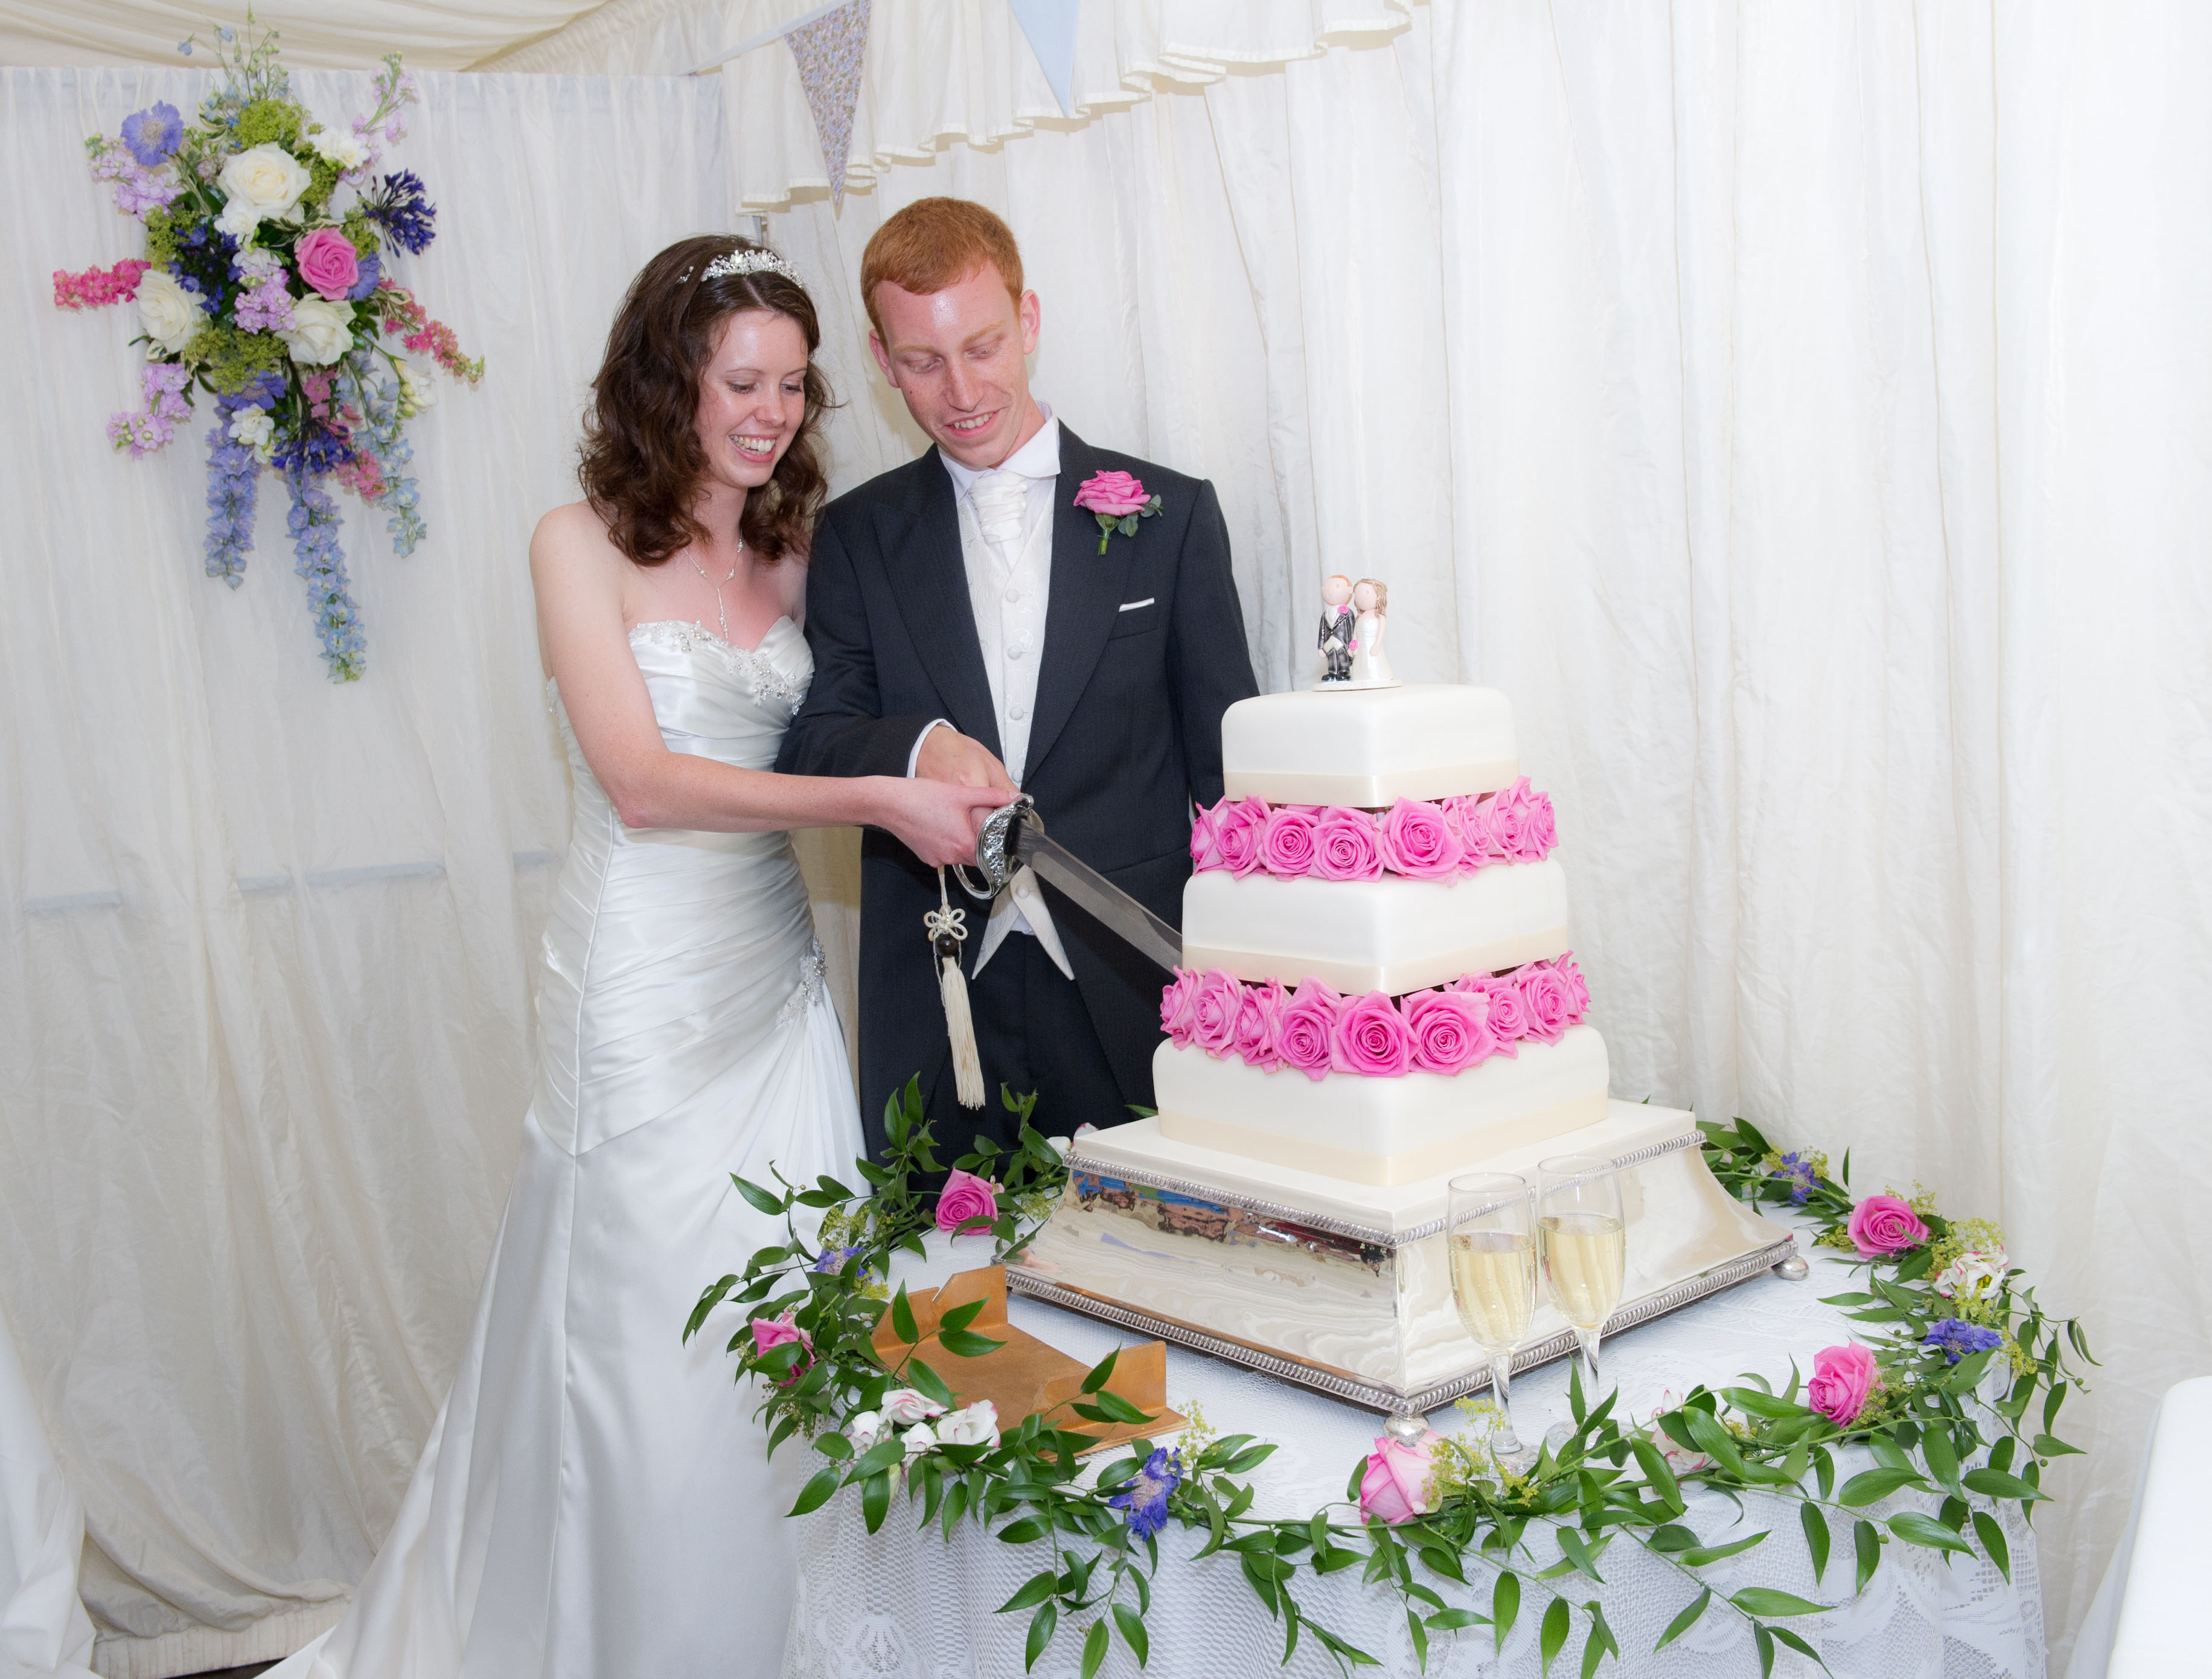 Wedding Quotes Cake Cutting Event Planning Quotes And Sayings